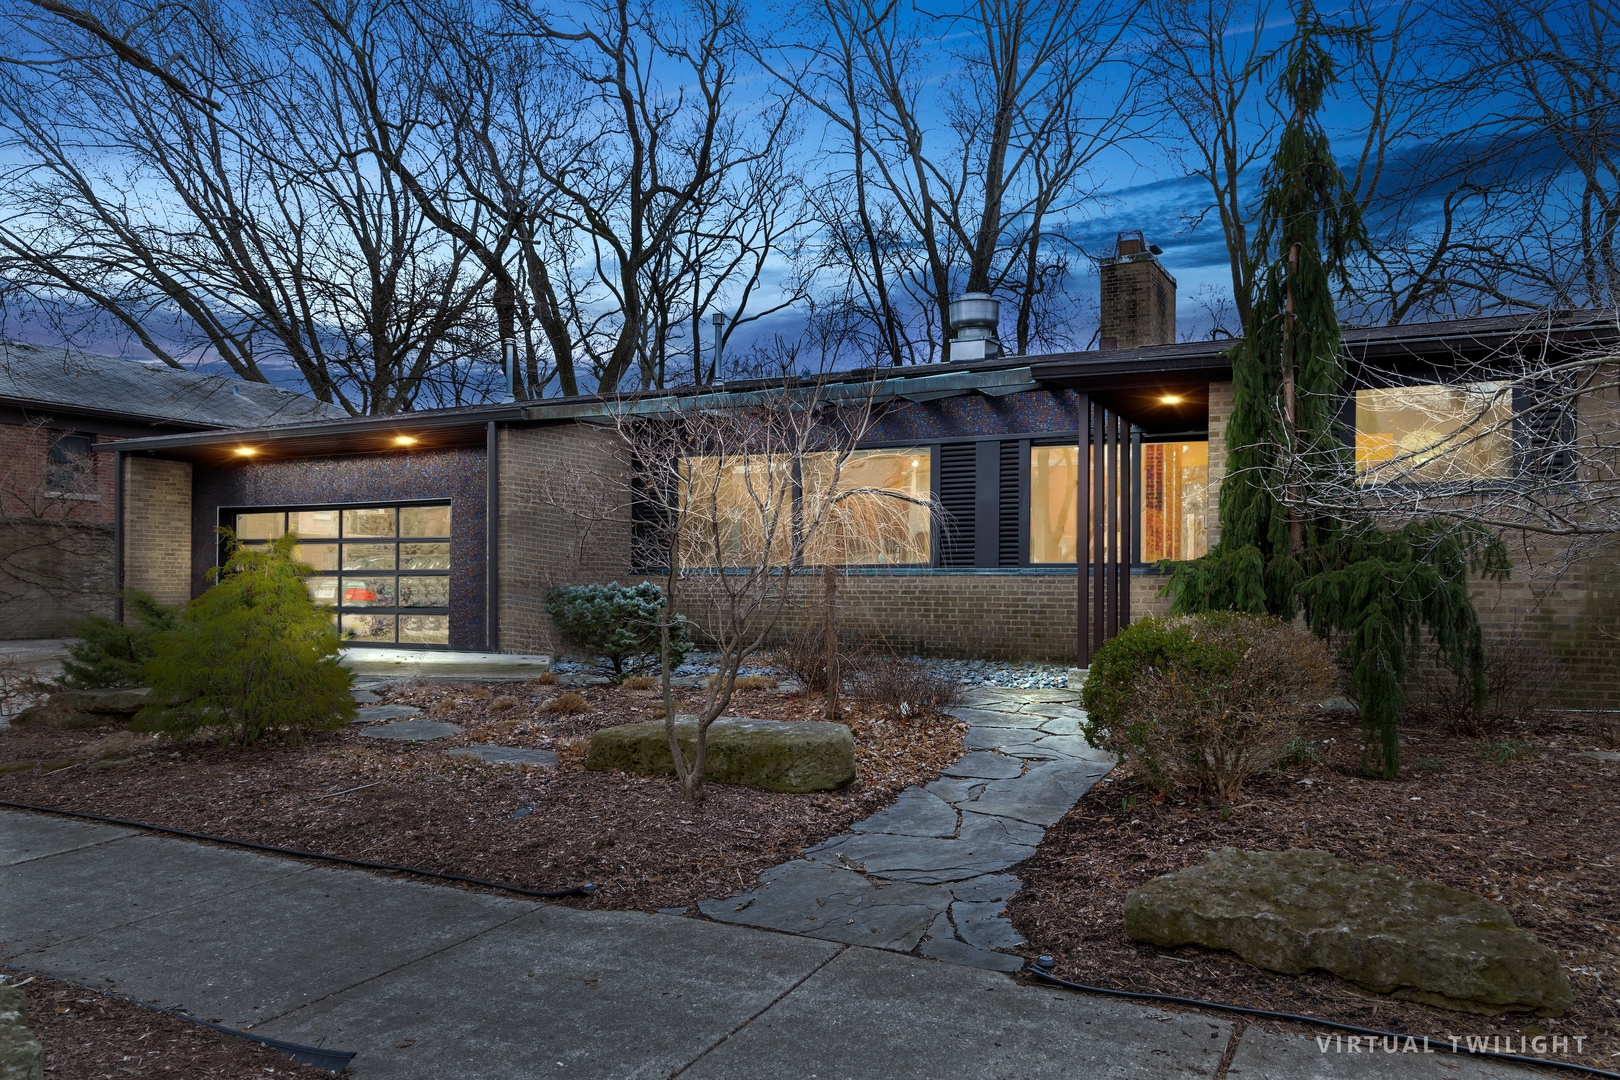 CALIFORNIA MEETS LINCOLN SQUARE/BUDLONG WOODS-Experience the rare opportunity to own a one-of-a-kind